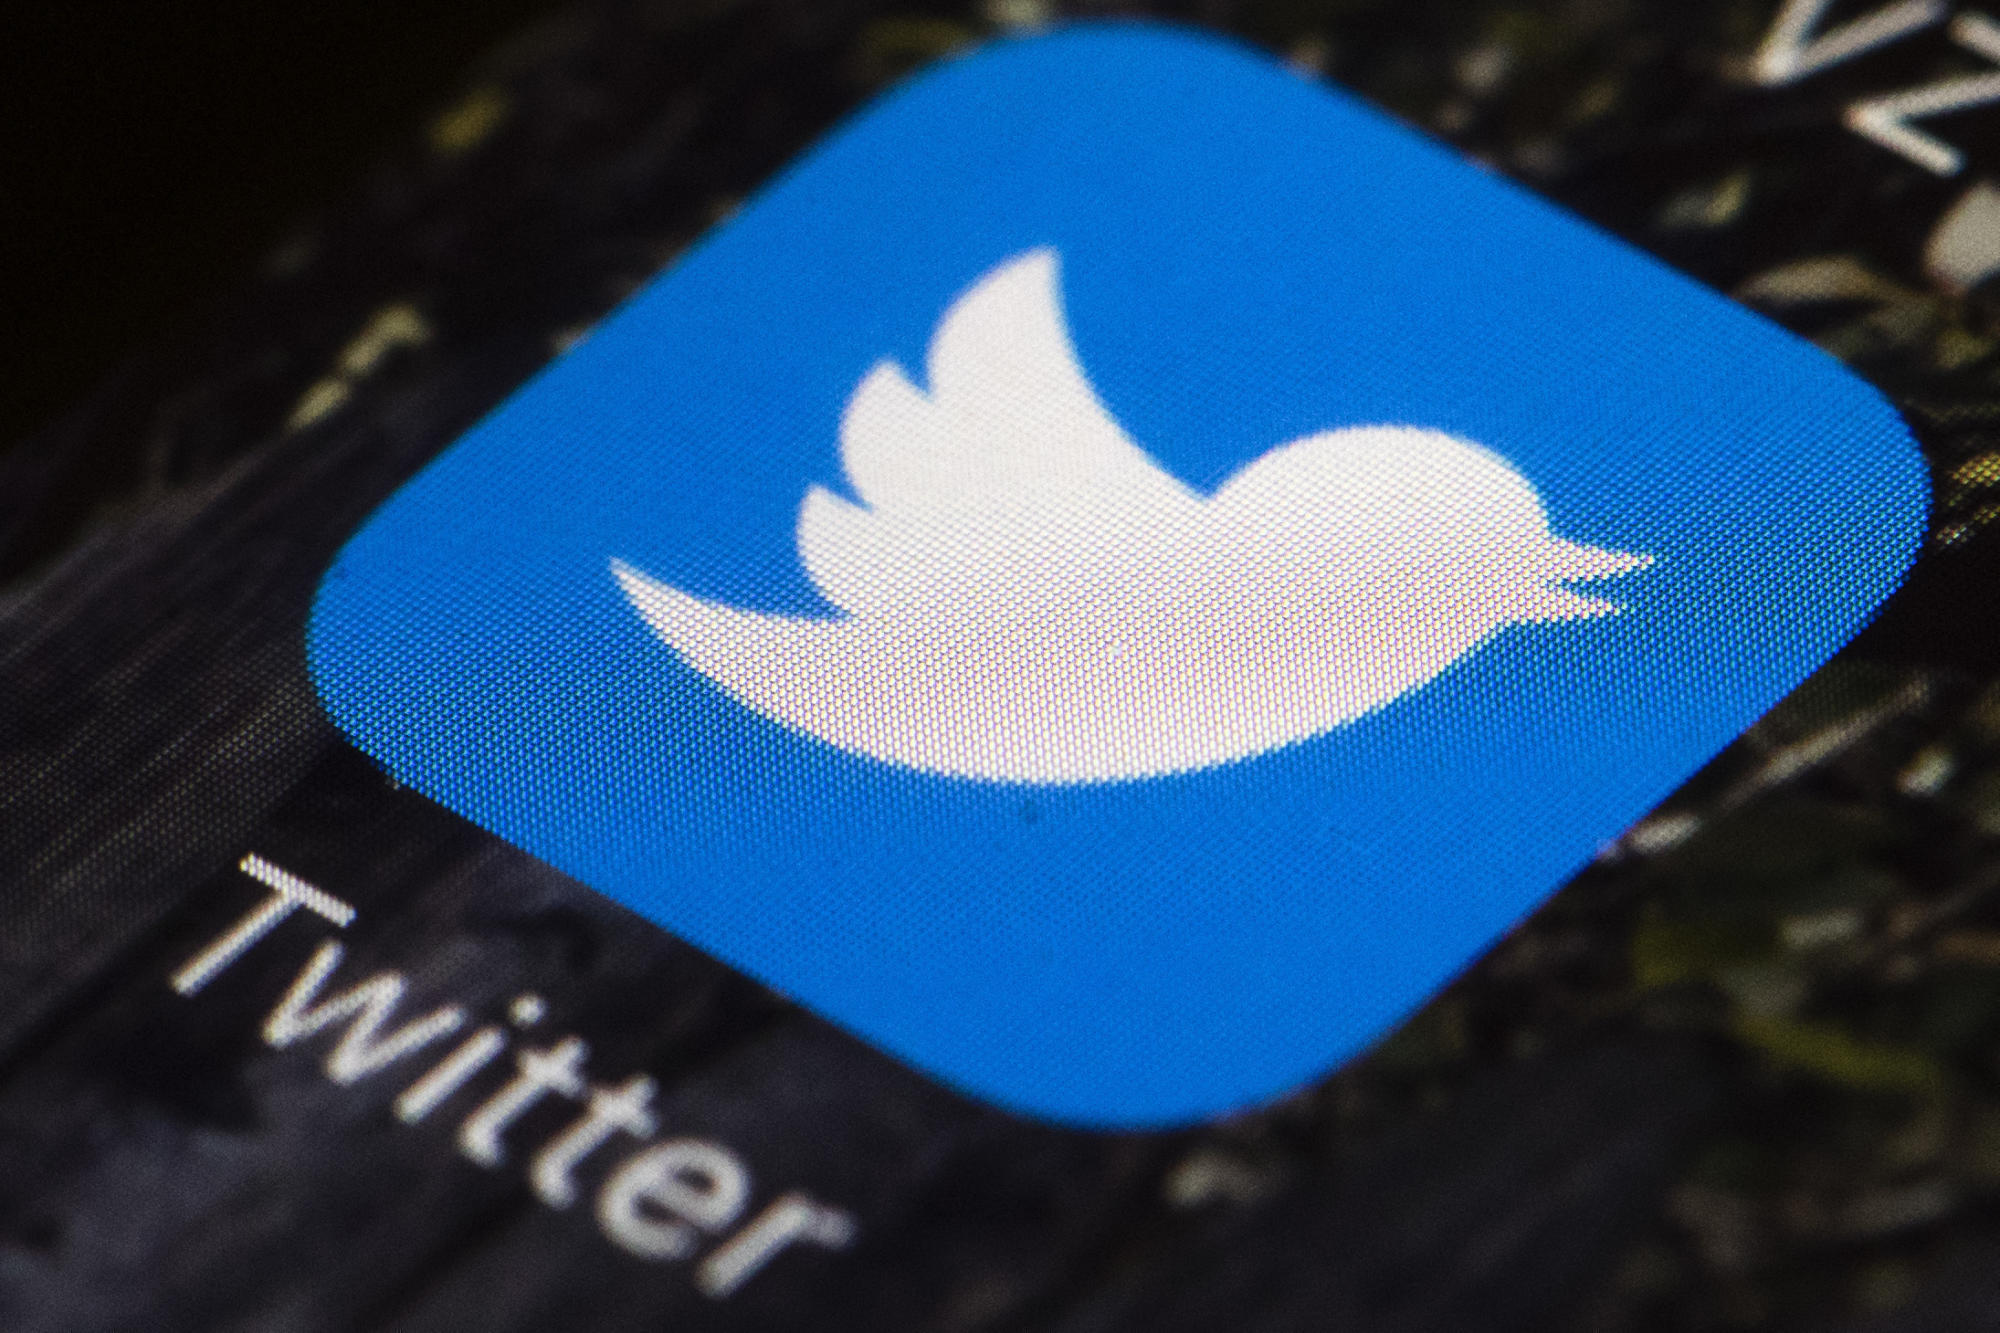 He refused to give up his coveted Twitter handle. Then he was 'swatted' and died of a heart attack.